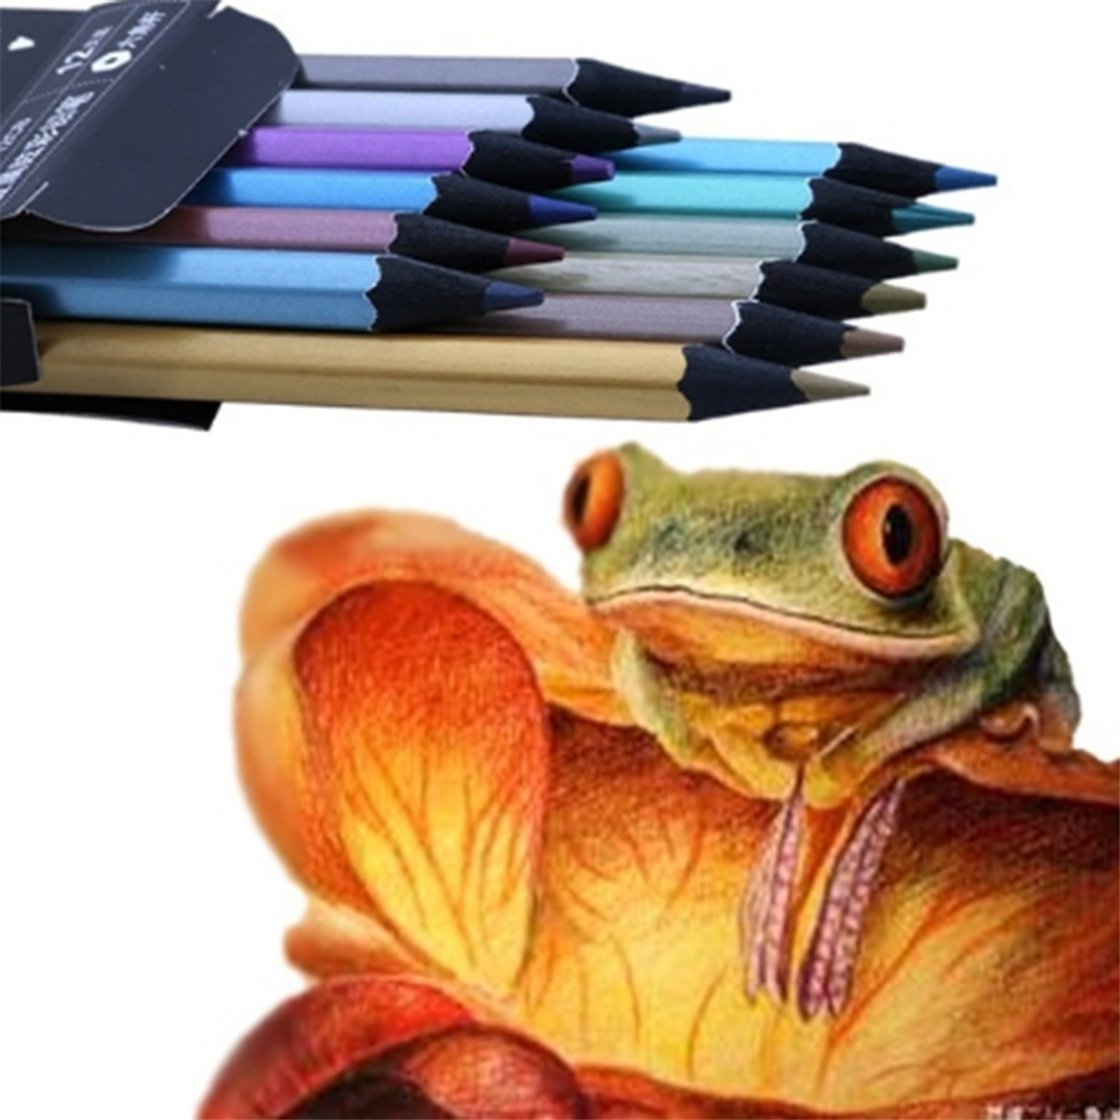 SOURBAN 12 Metallic Colored Pencil For Drawing Sketching Set Stationery